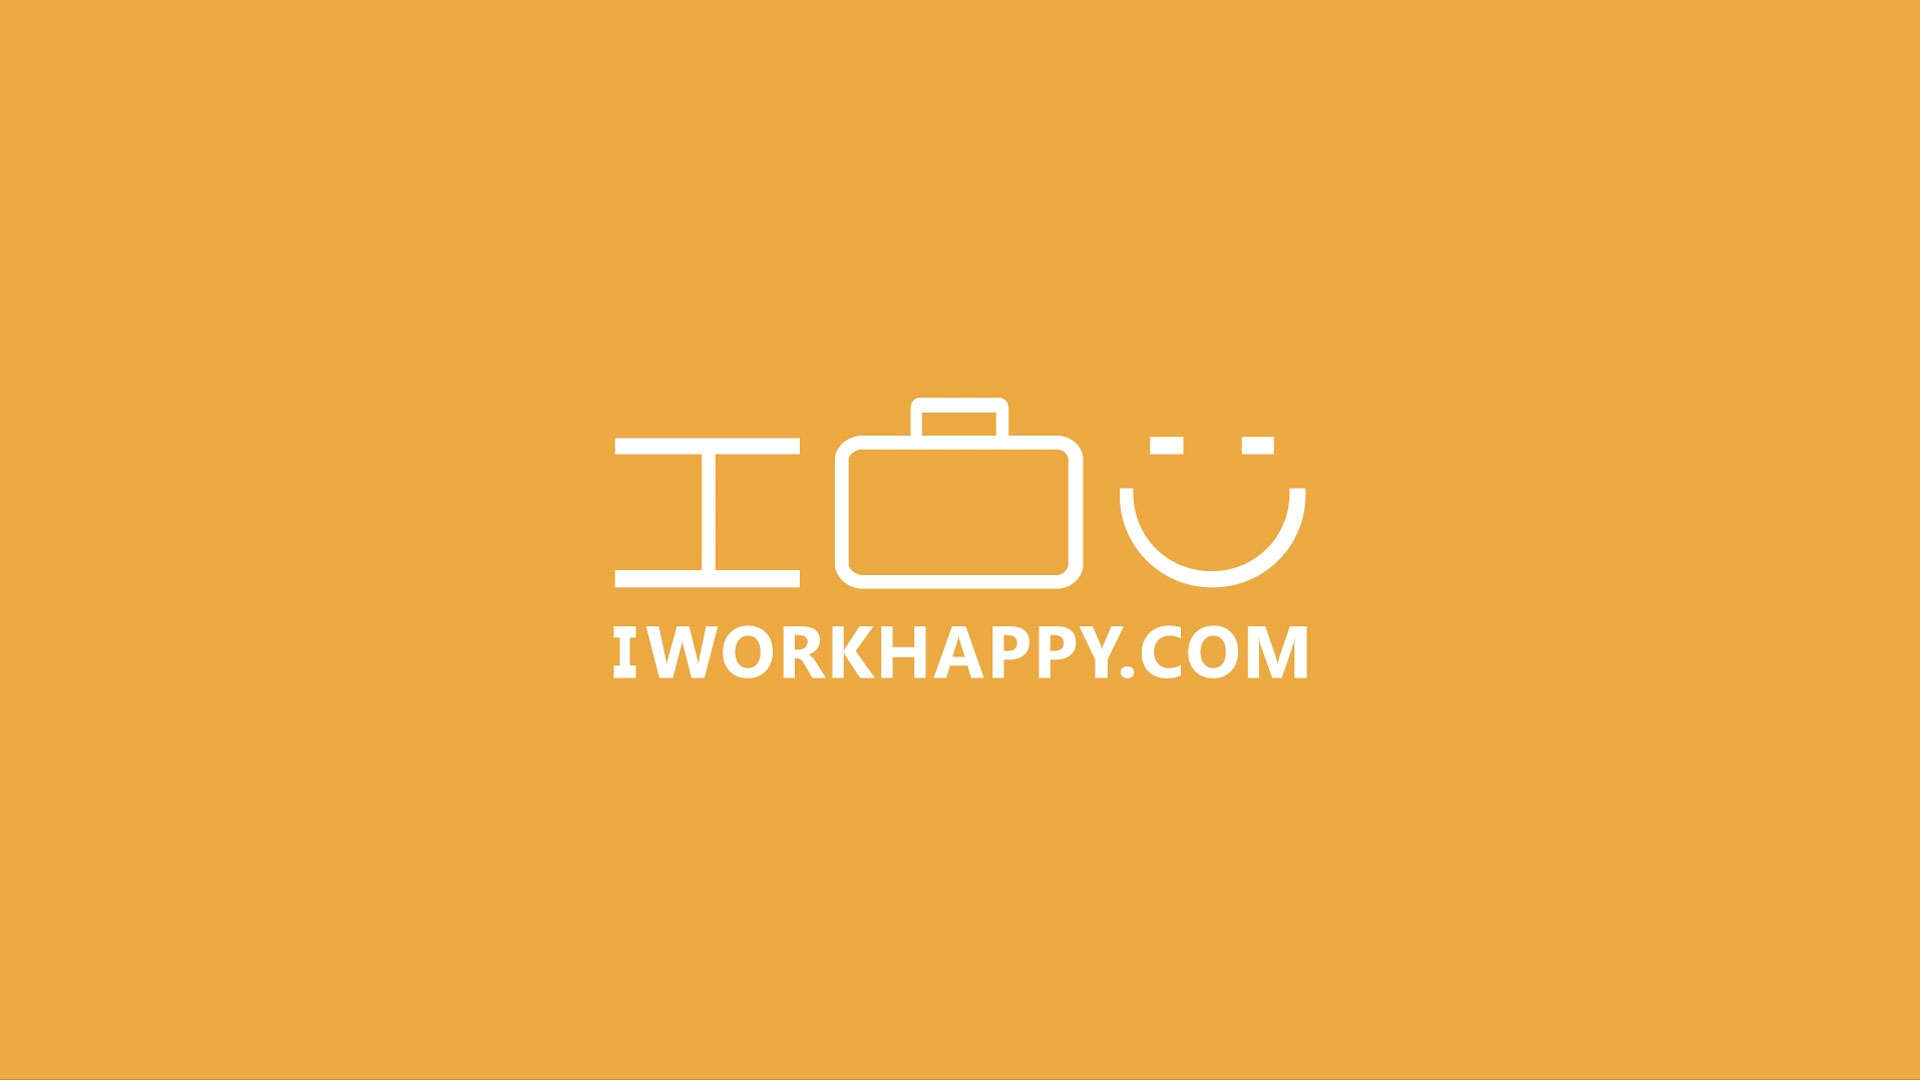 I Work Happy . com — blog/vlog about how to make your working life happy!